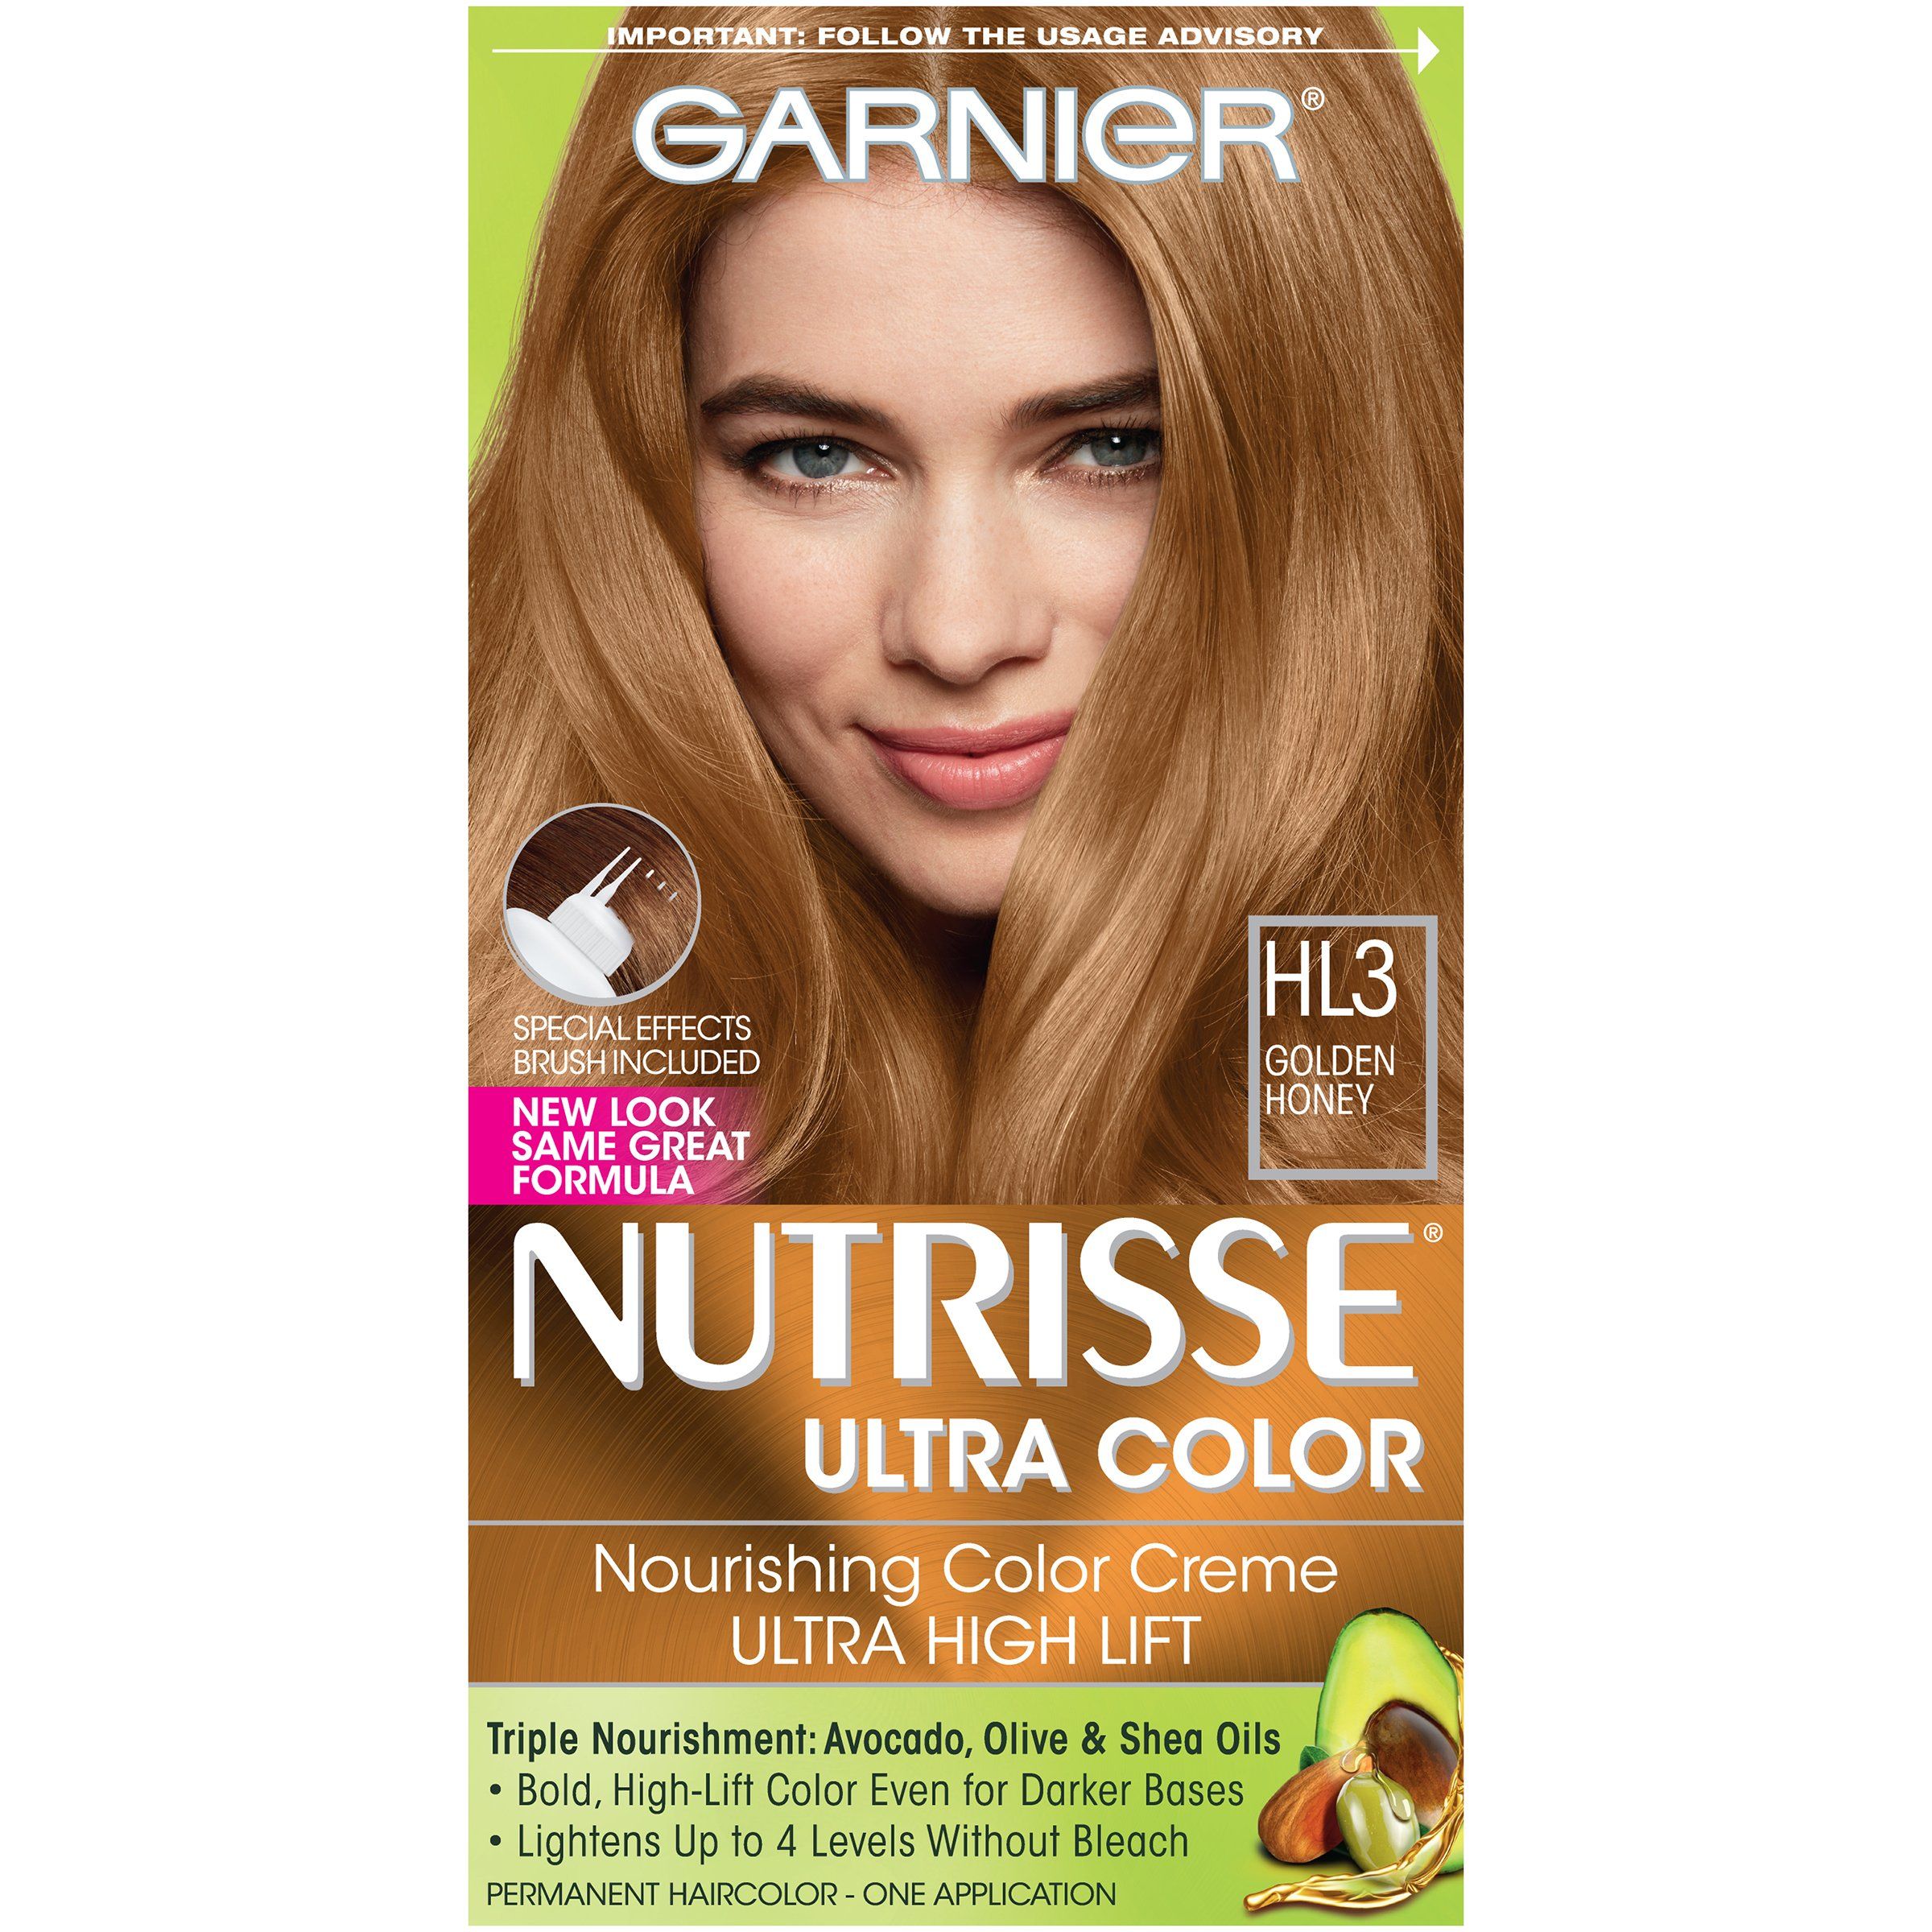 Amazon Garnier Nutrisse Ultra Color Nourishing Hair Color Creme